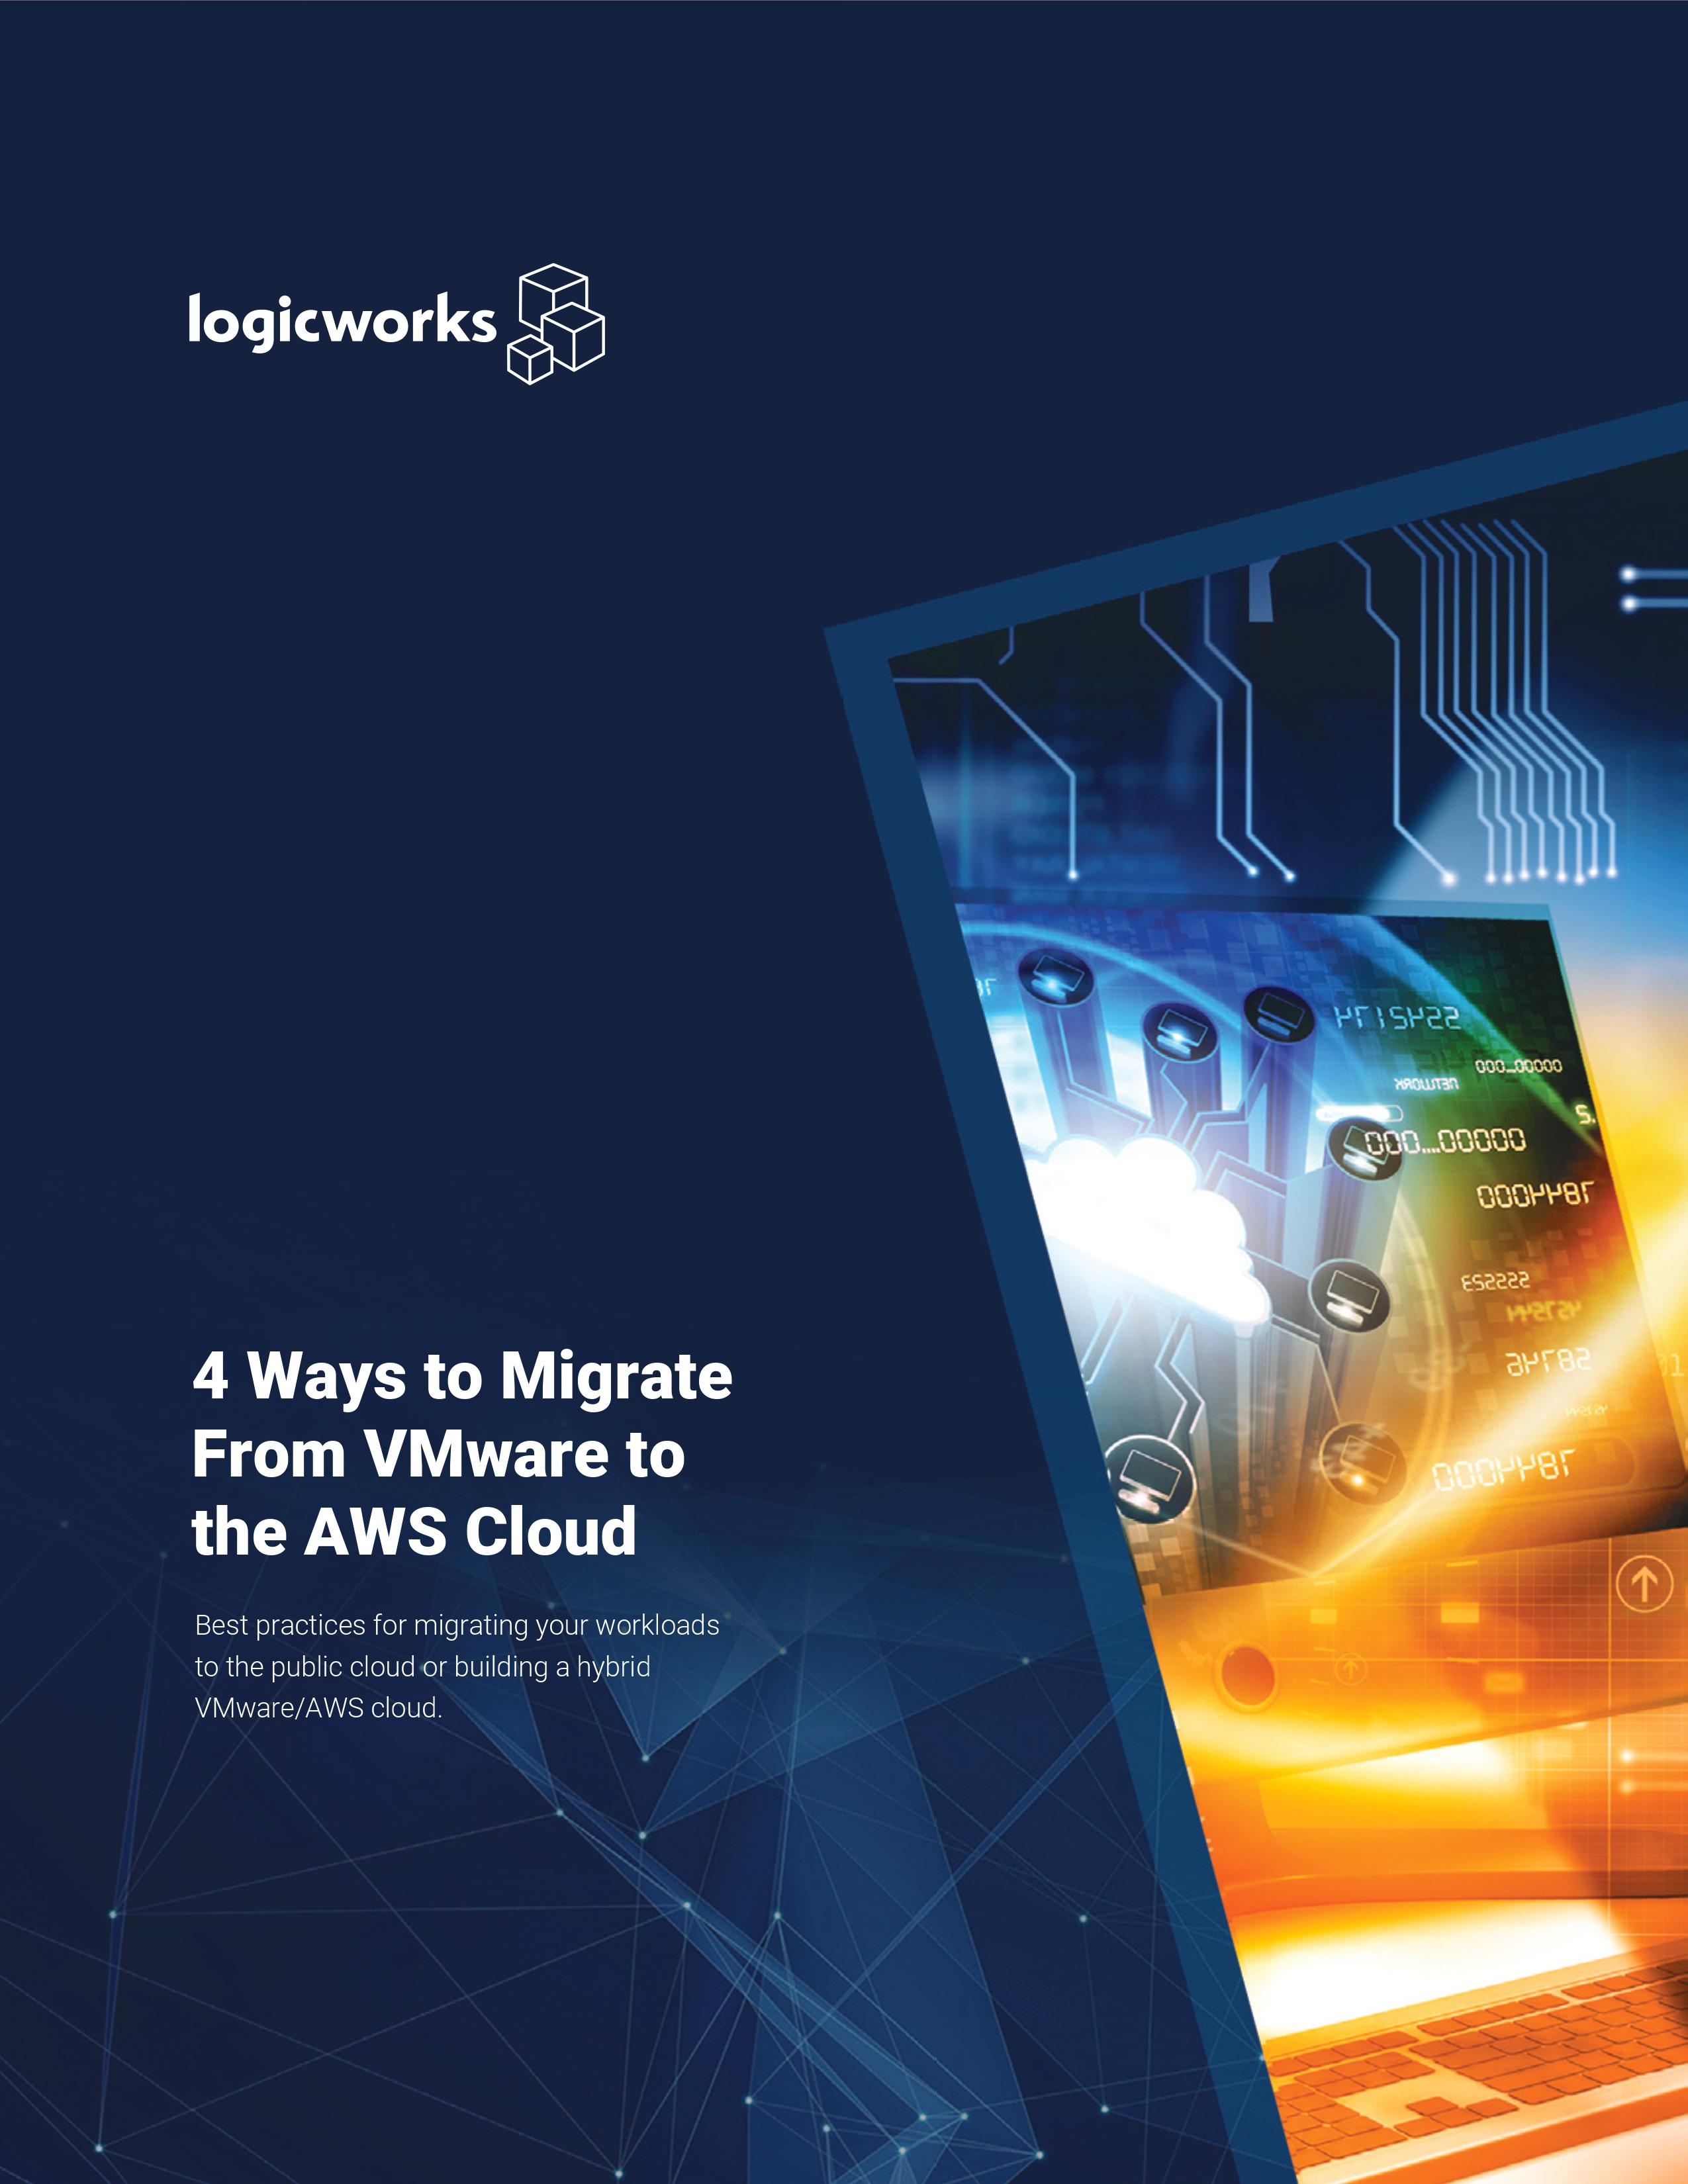 4 Ways to Migrate from VMware to the AWS Cloud.jpg